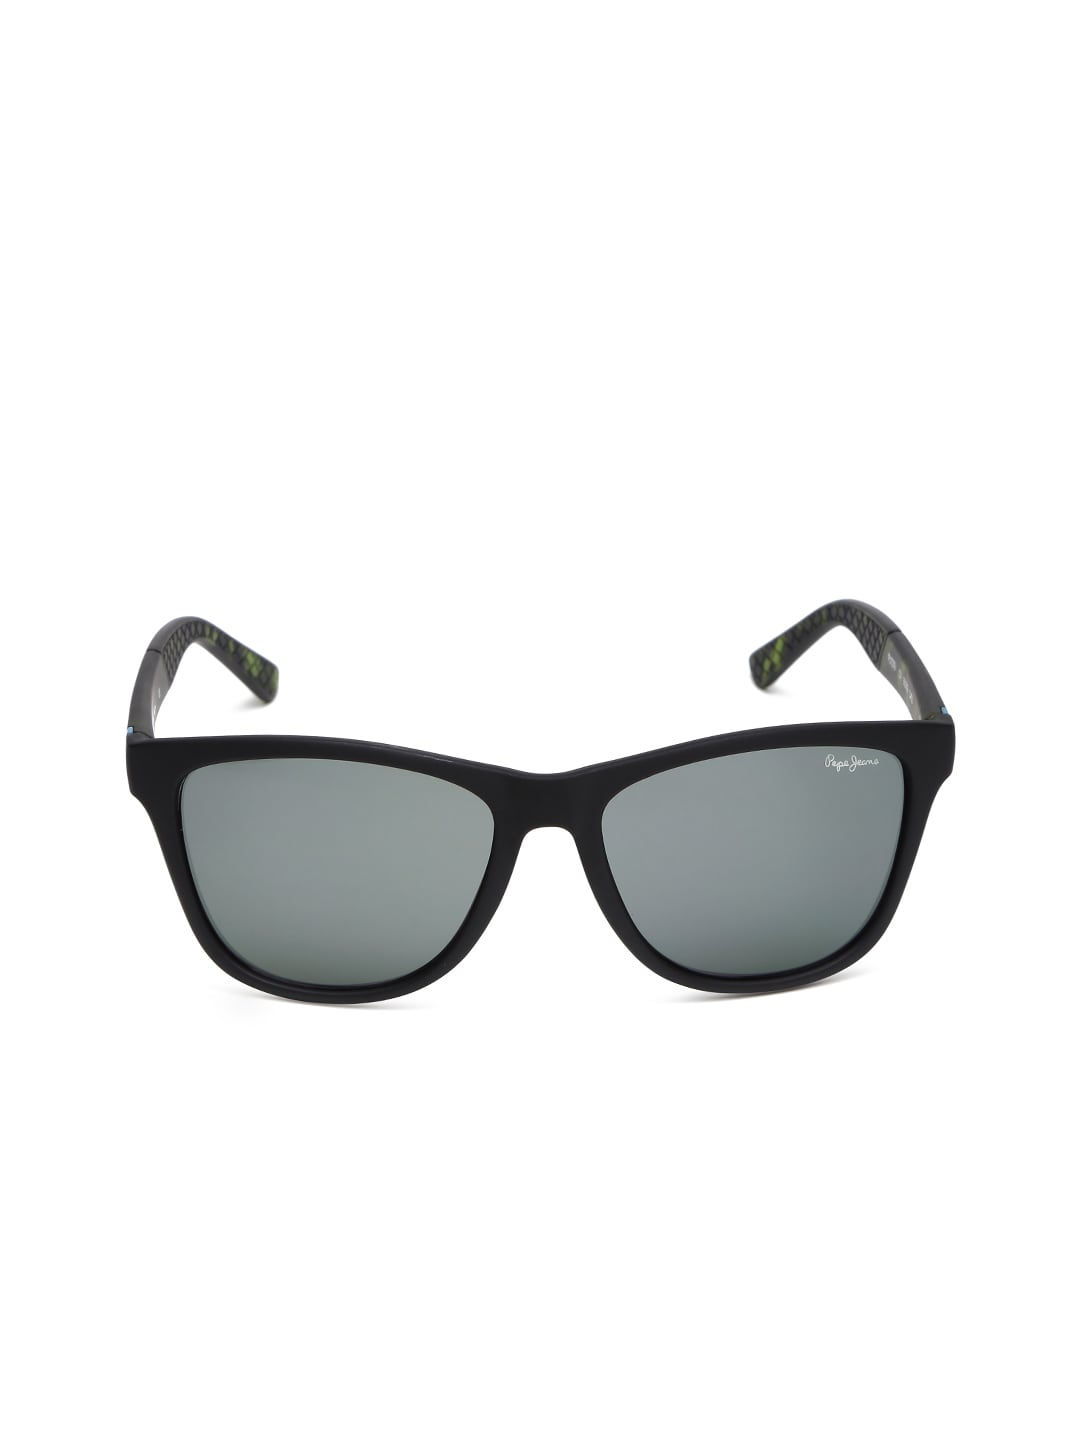 wafers sunglasses  Wayfarer Sunglasses - Buy Wayfarer Sunglasses Online in India